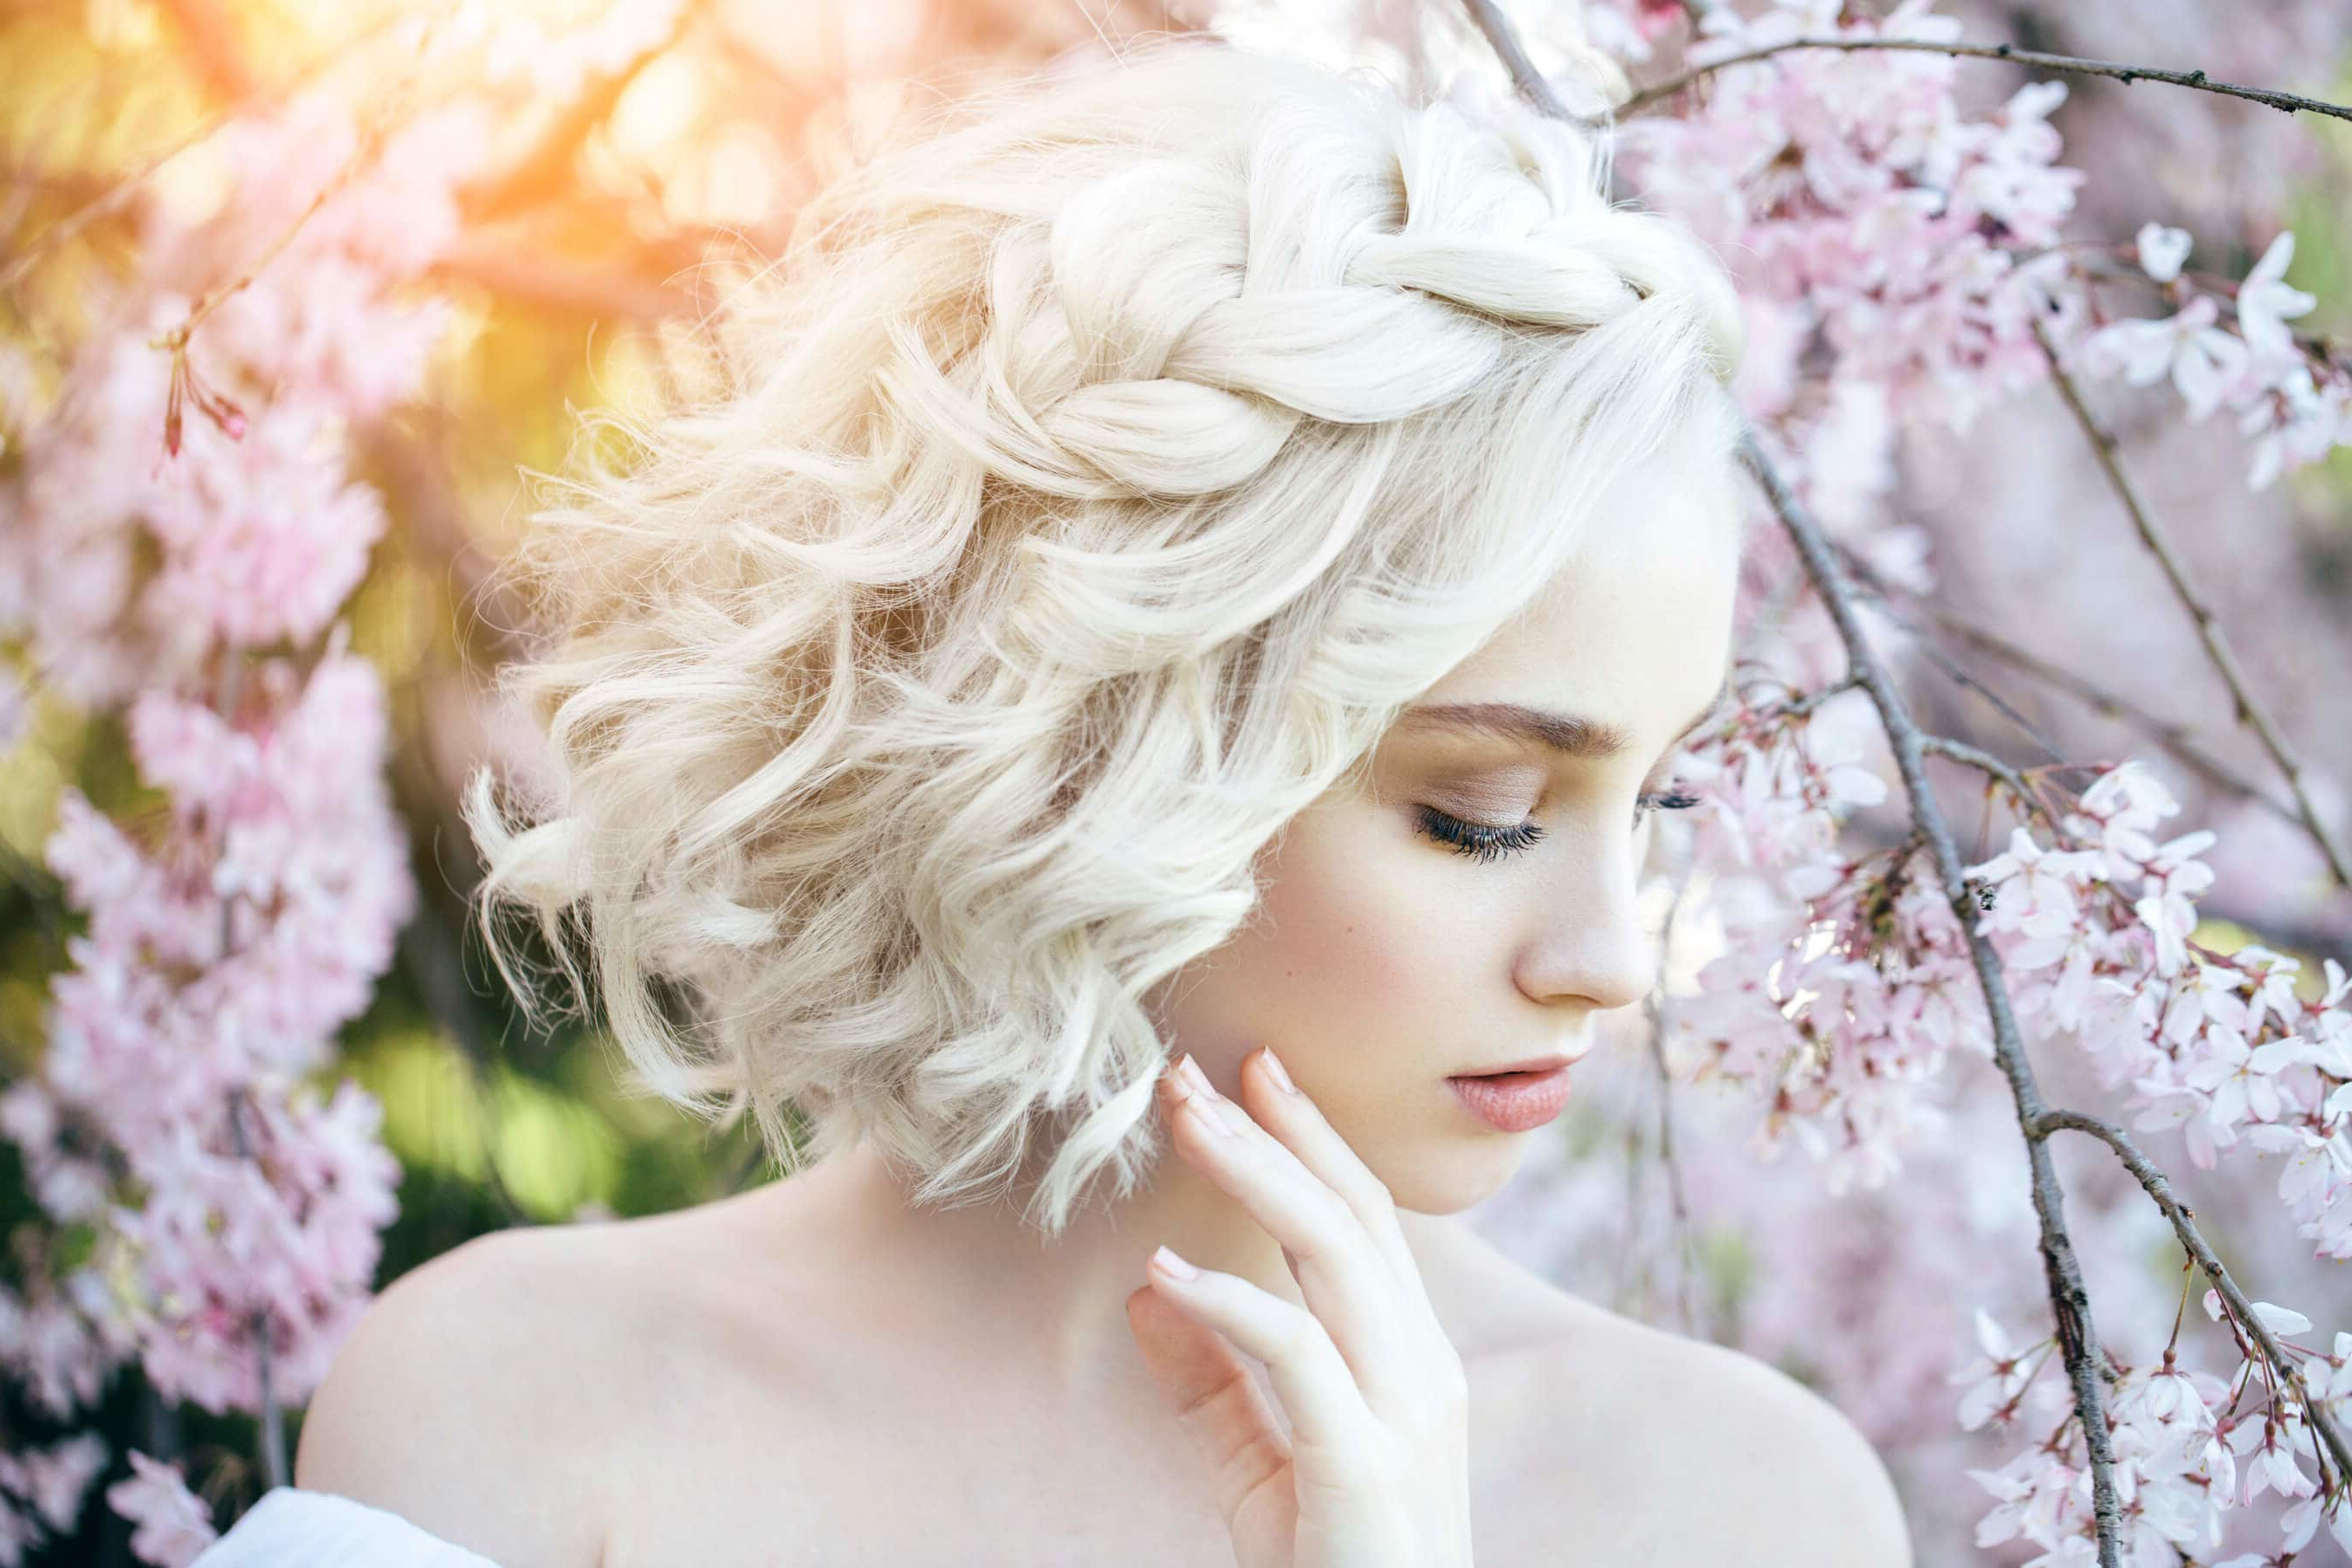 14 Chic Wedding Hairstyles For Short Hair Pertaining To Hairstyle For Short Hair For Wedding (View 14 of 25)